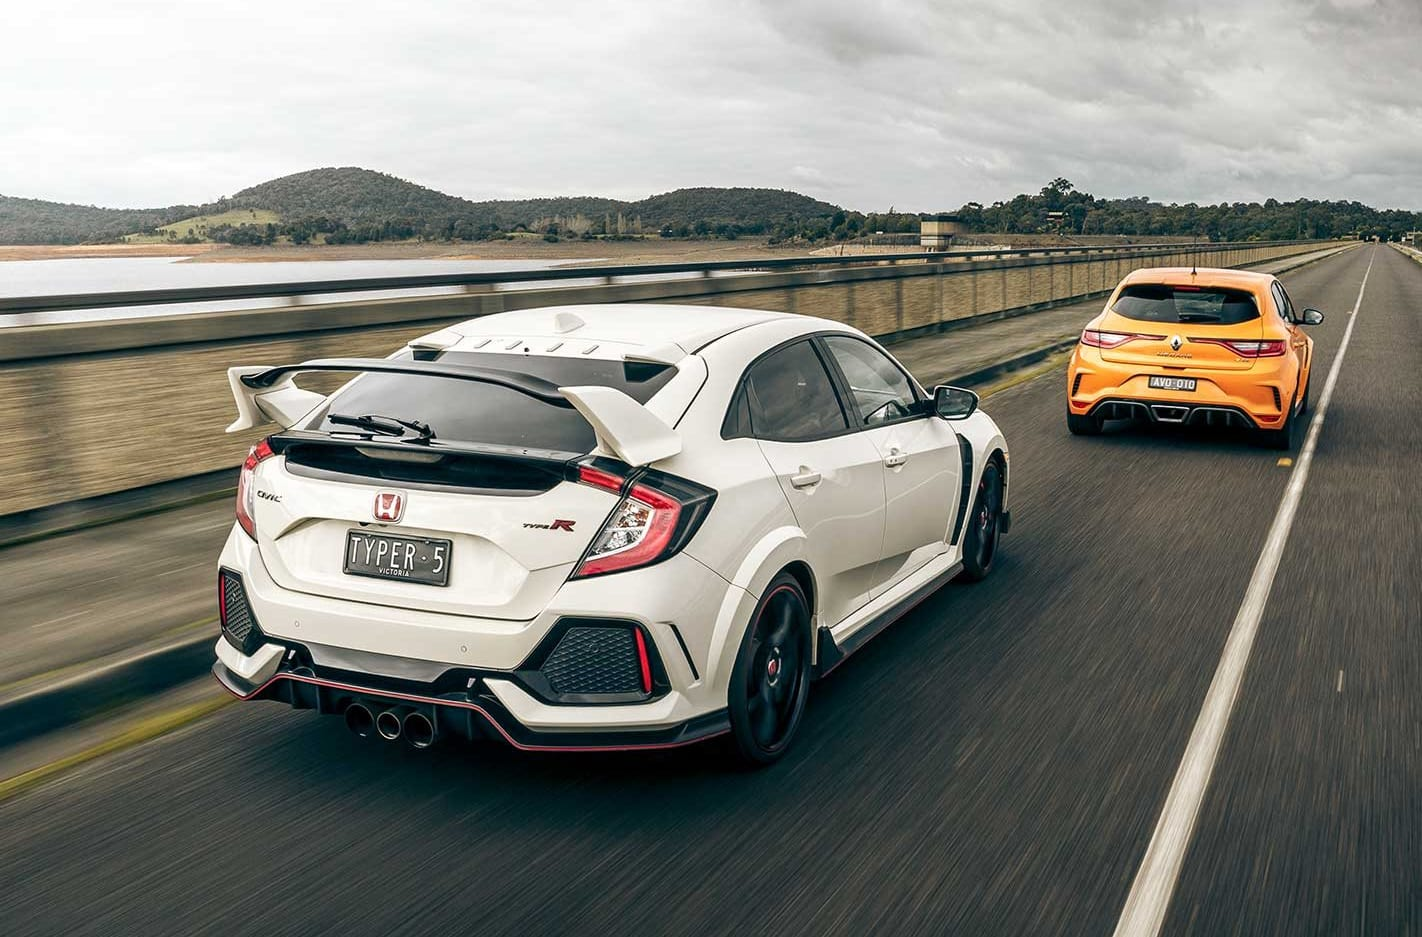 2019 hot hatch numbers